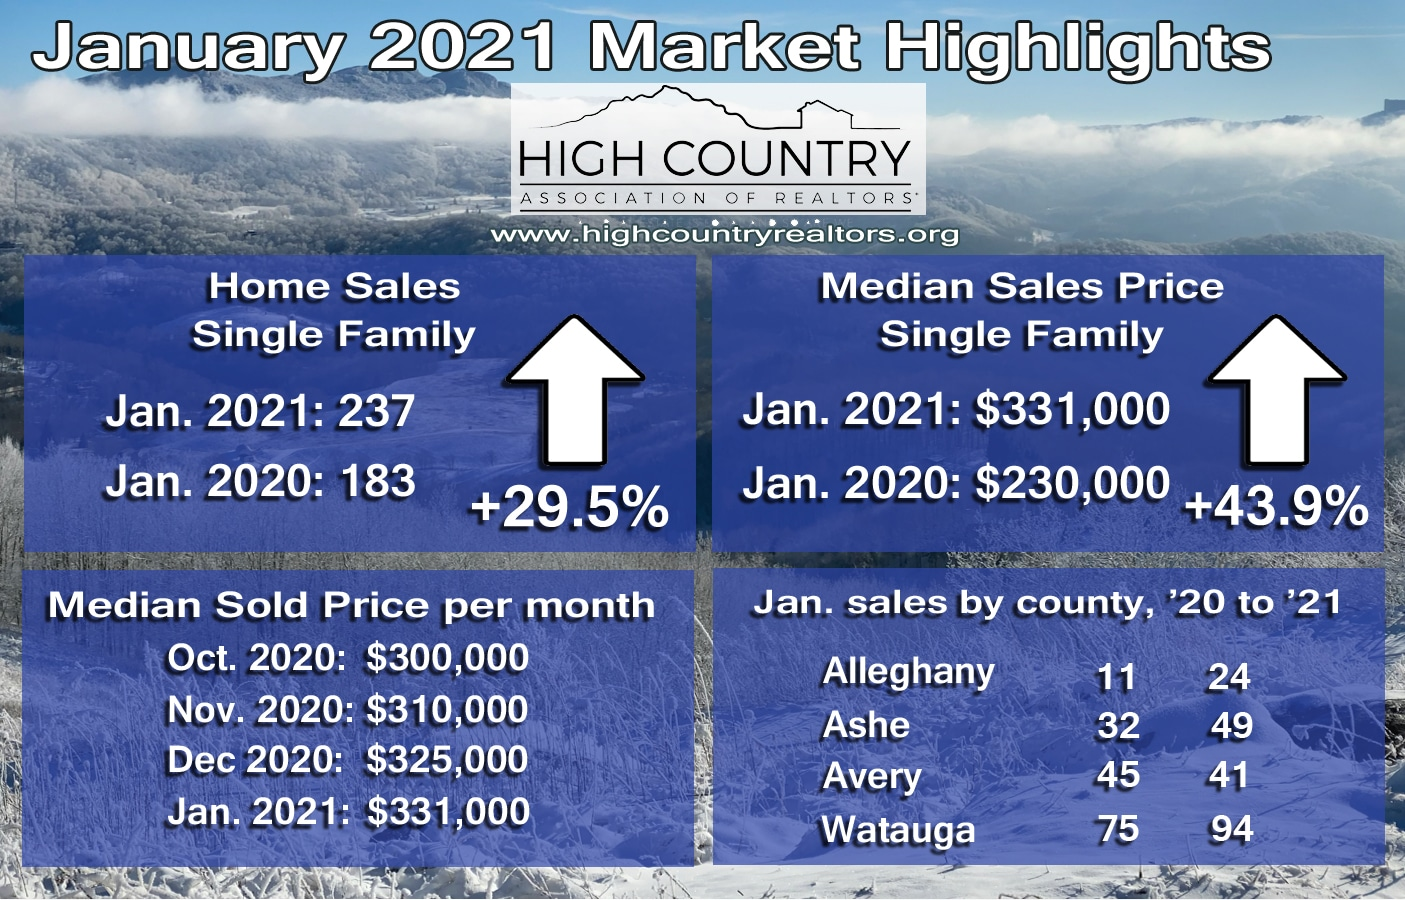 Sales prices remain strong for High Country homes